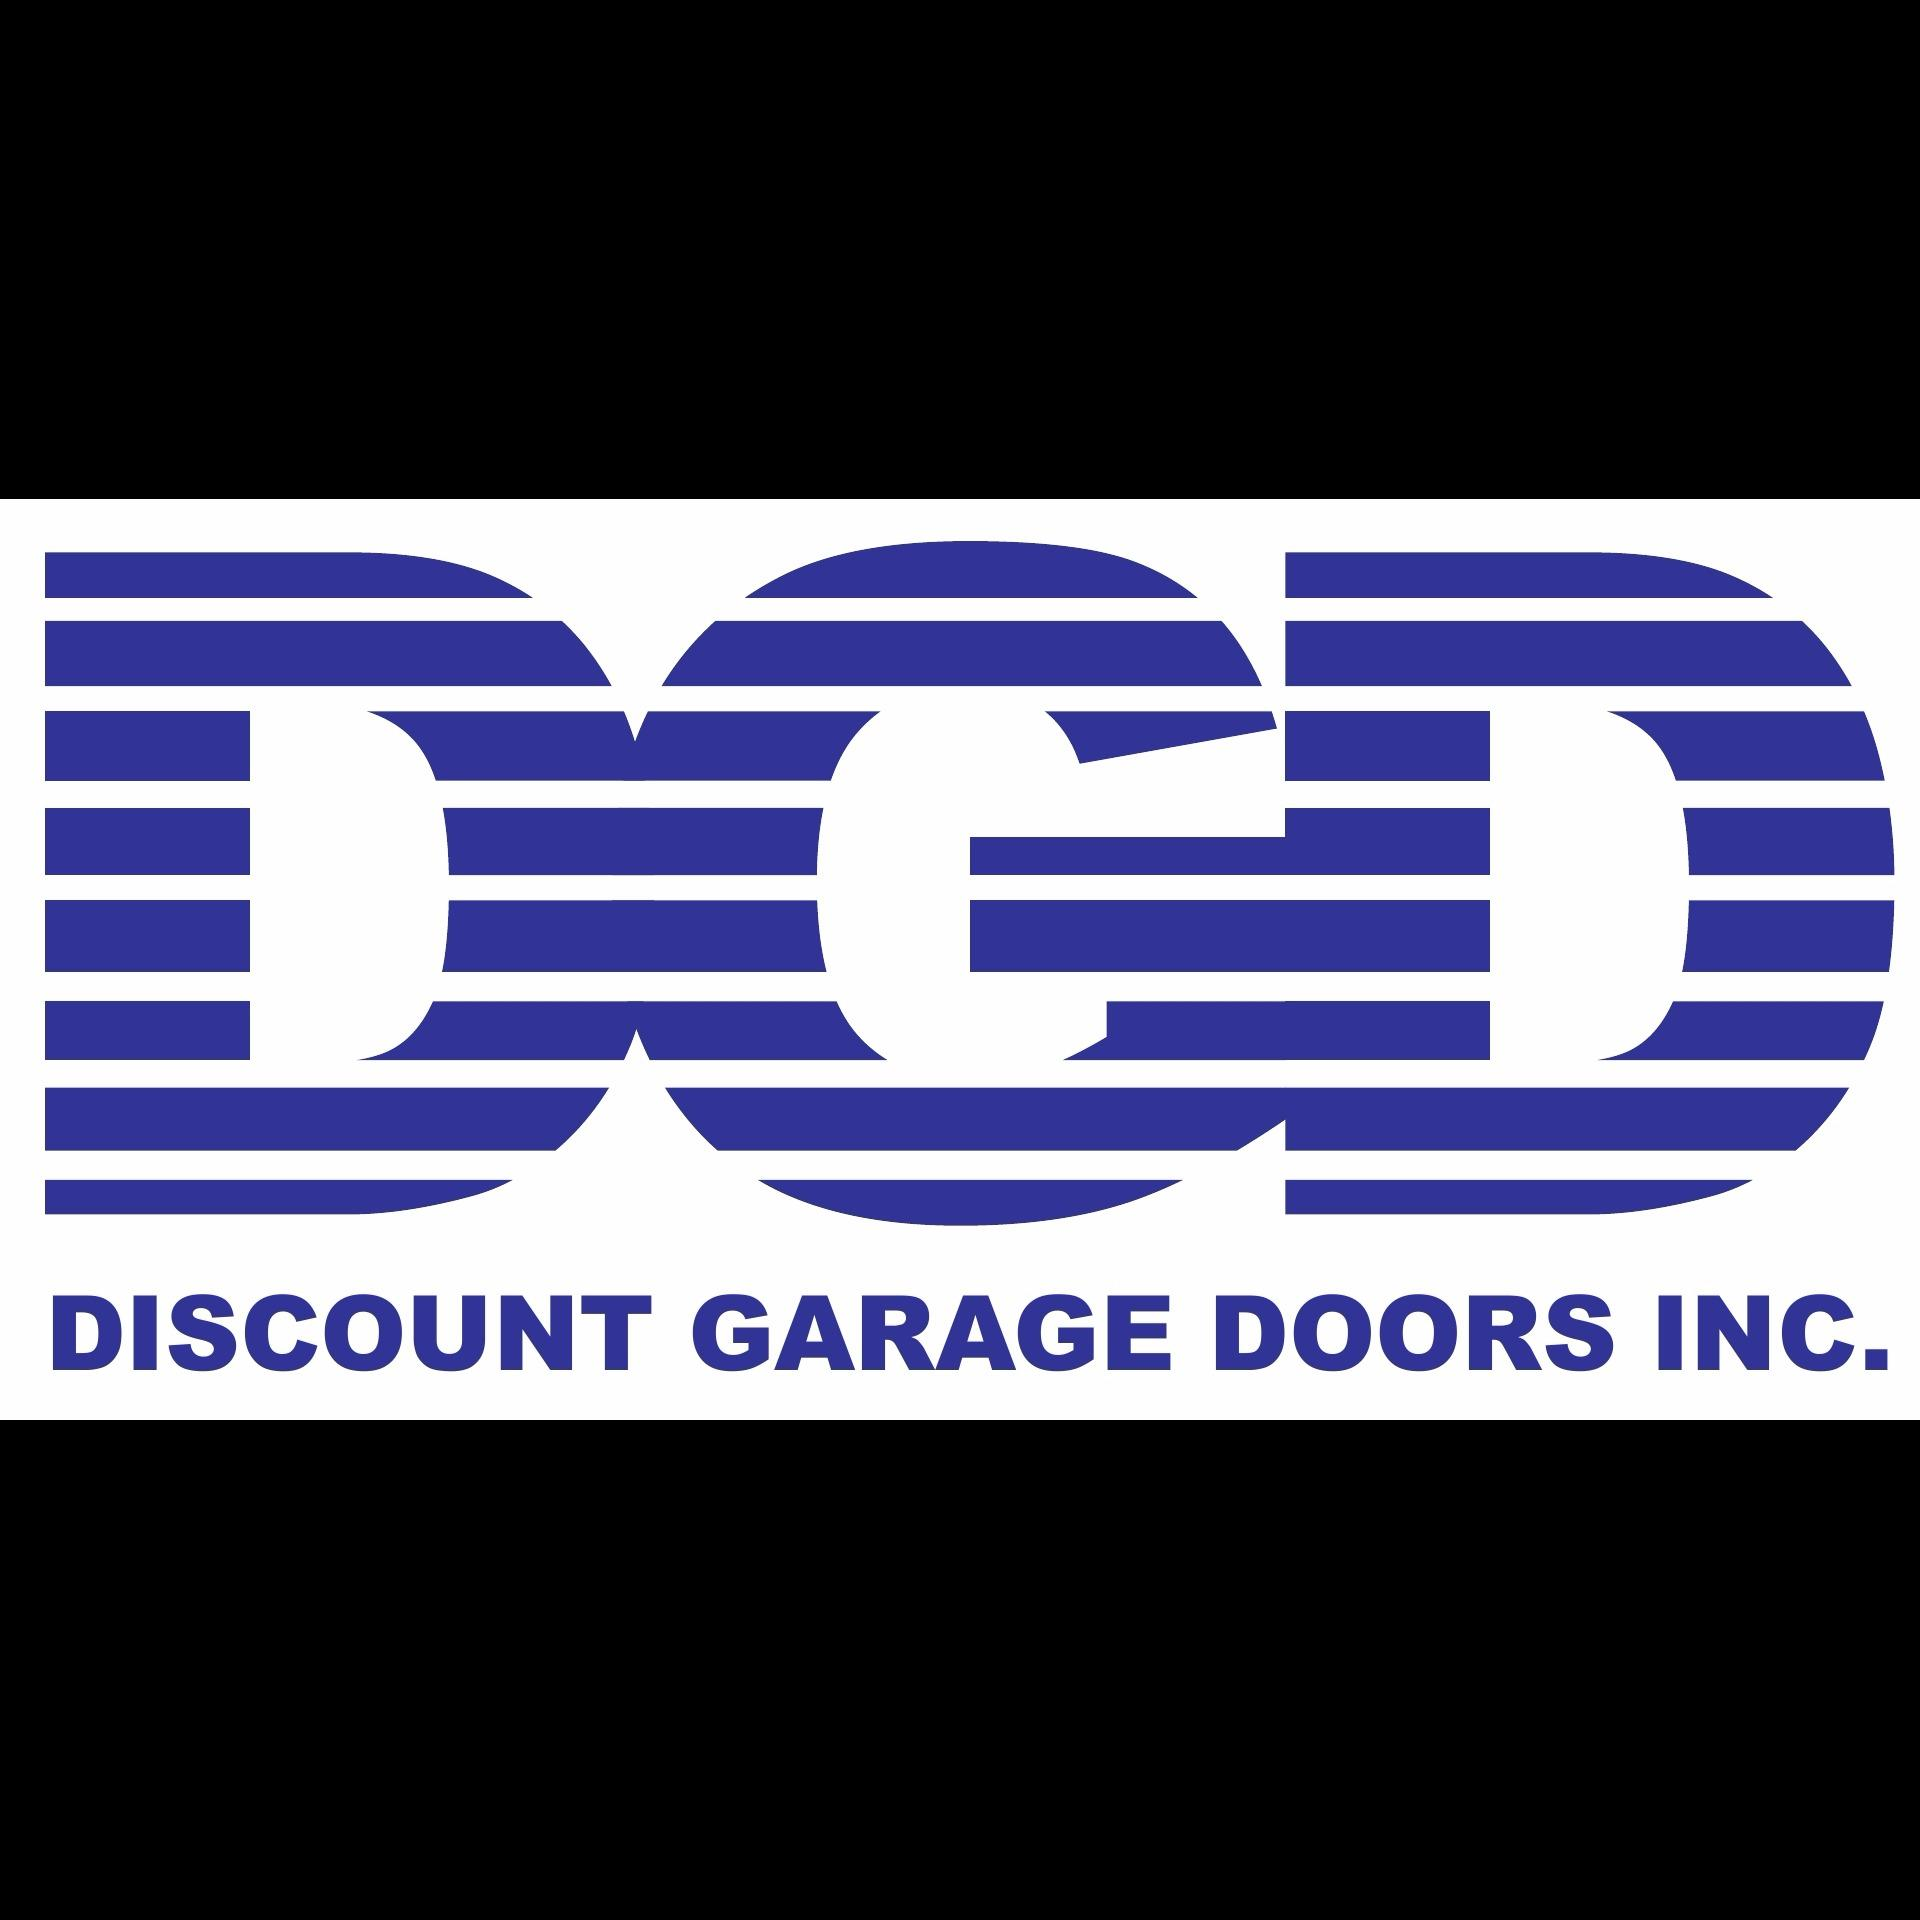 Discount Garage Doors, Inc. image 5